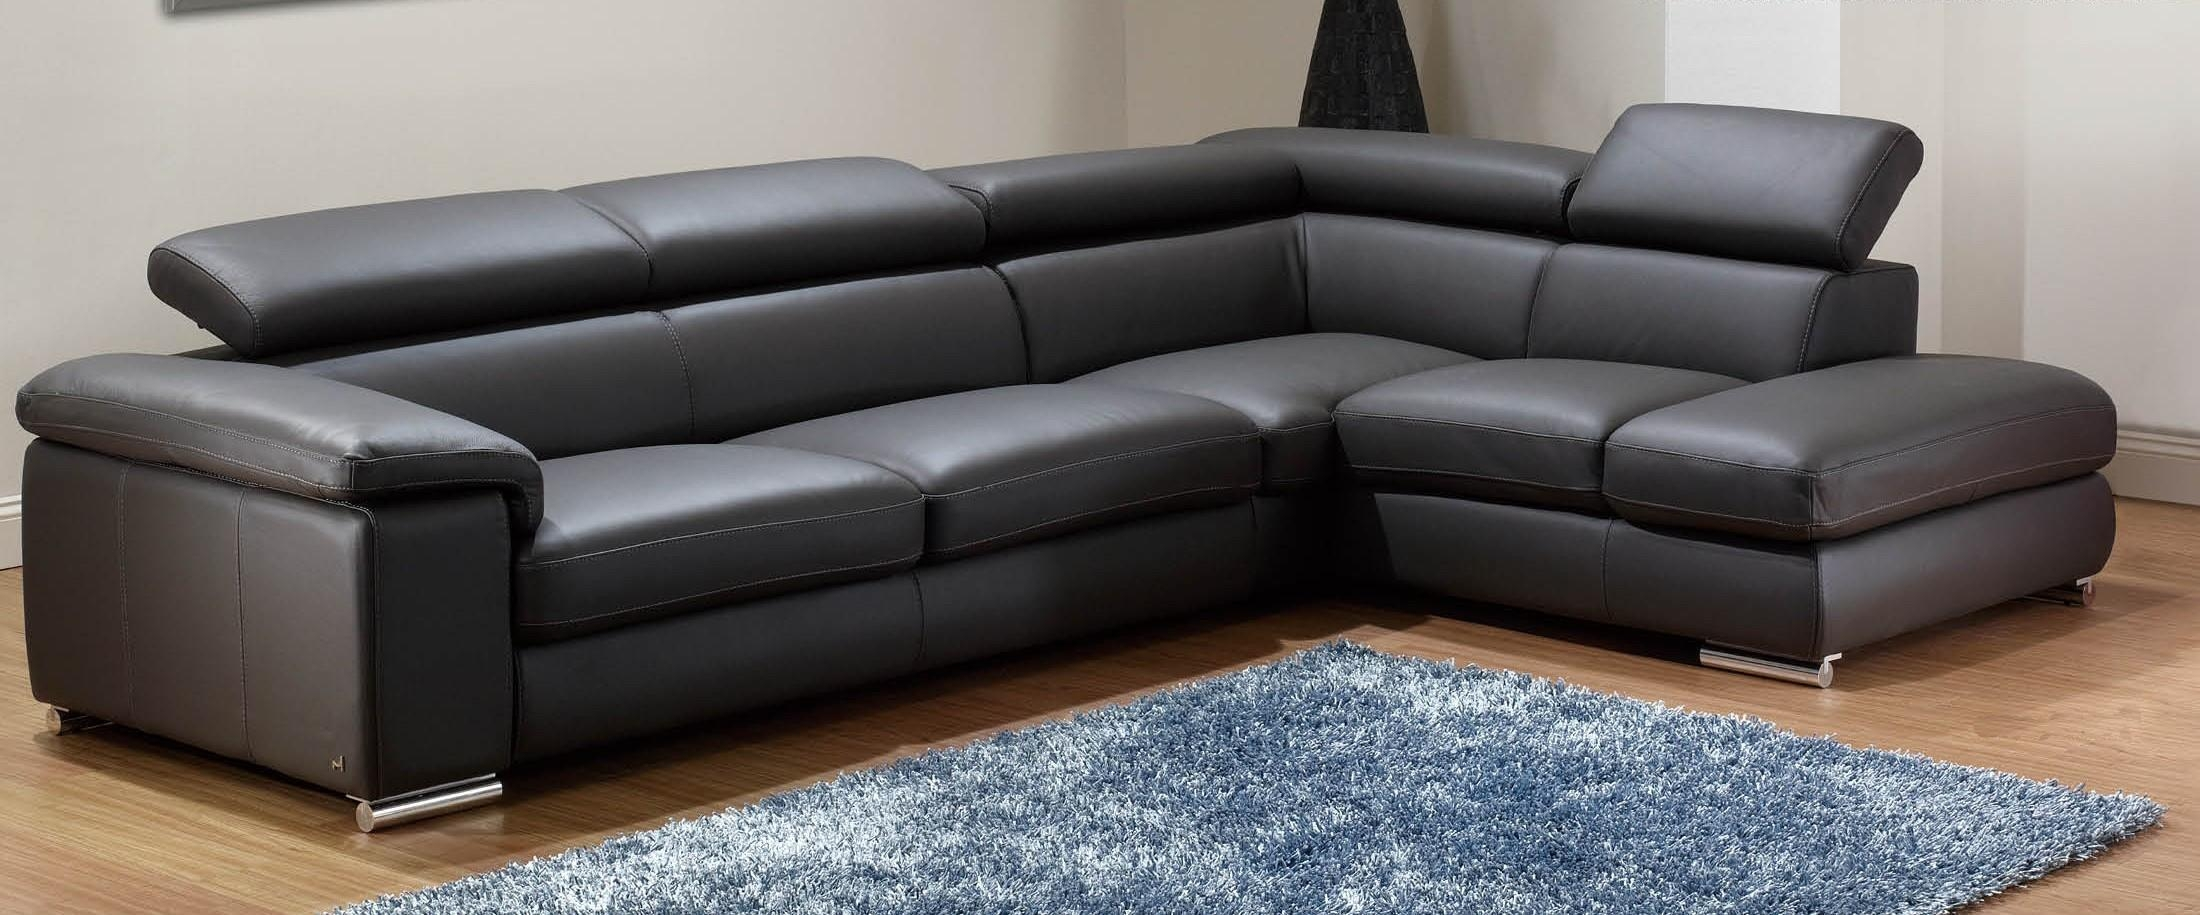 Sofas : Marvelous Sectional Sleeper Sofa Italian Sofa Leather Regarding Black Leather Sectional Sleeper Sofas (Image 19 of 21)